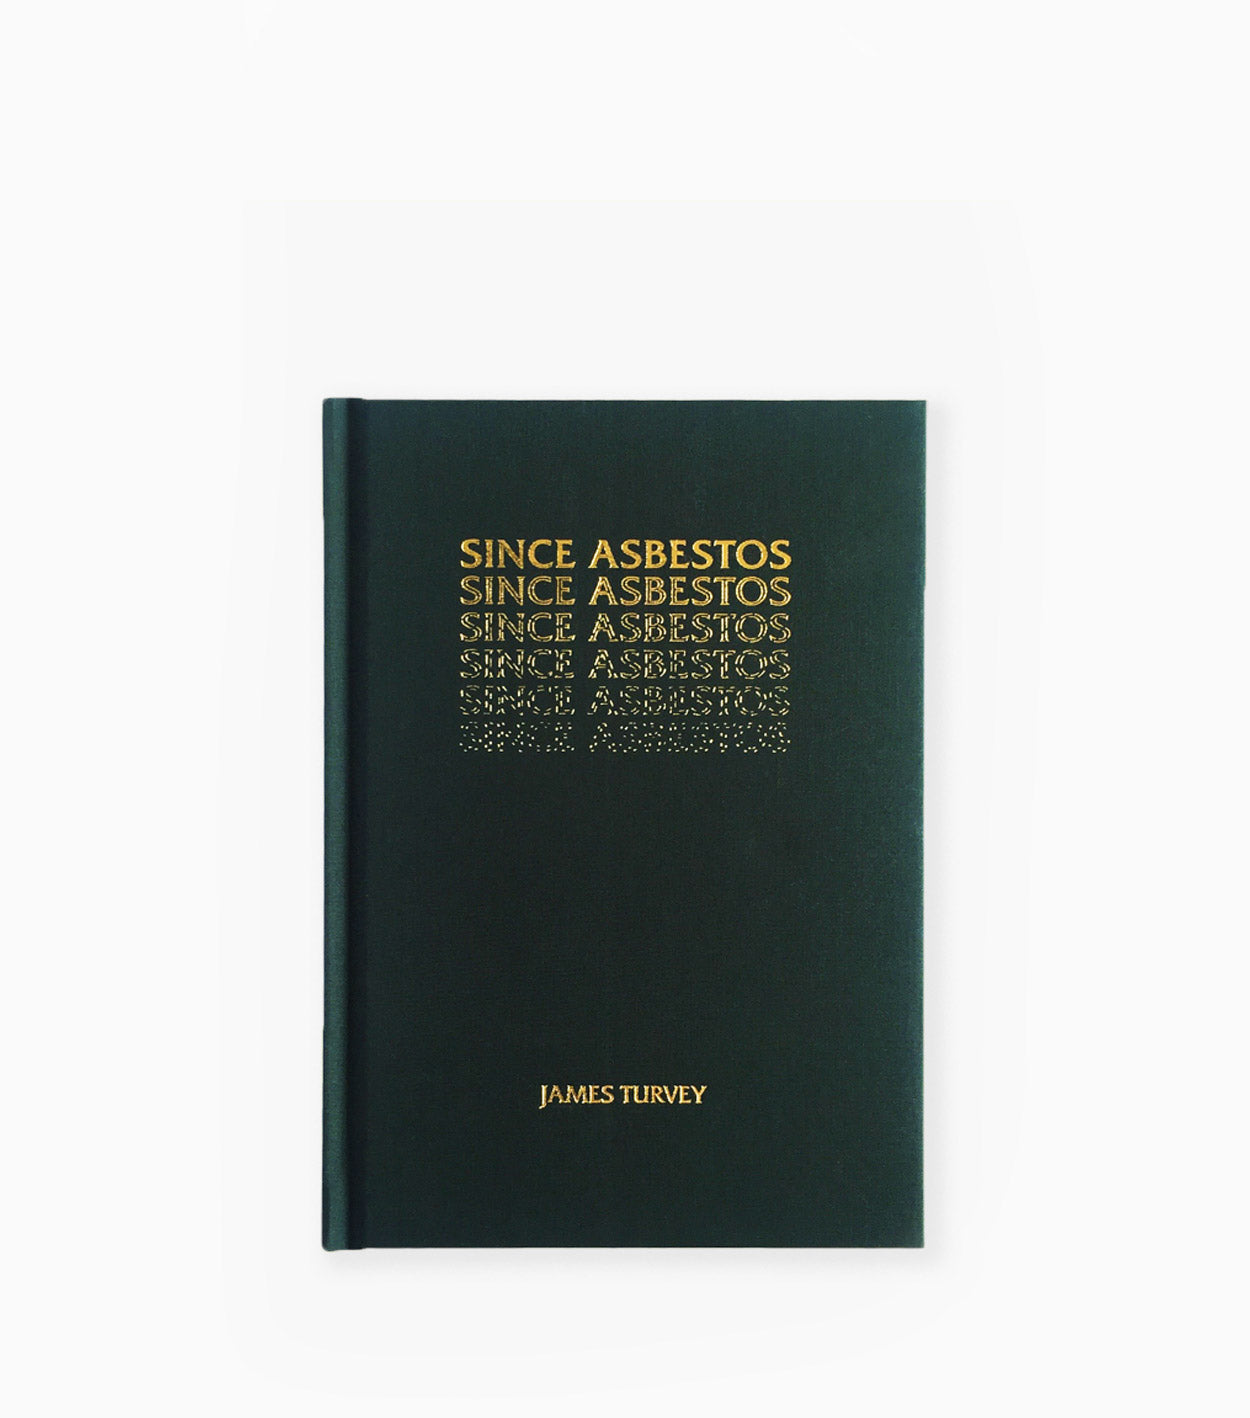 Come Sundown SINCE ASBESTOS by James Turvey Book - CARTOCON